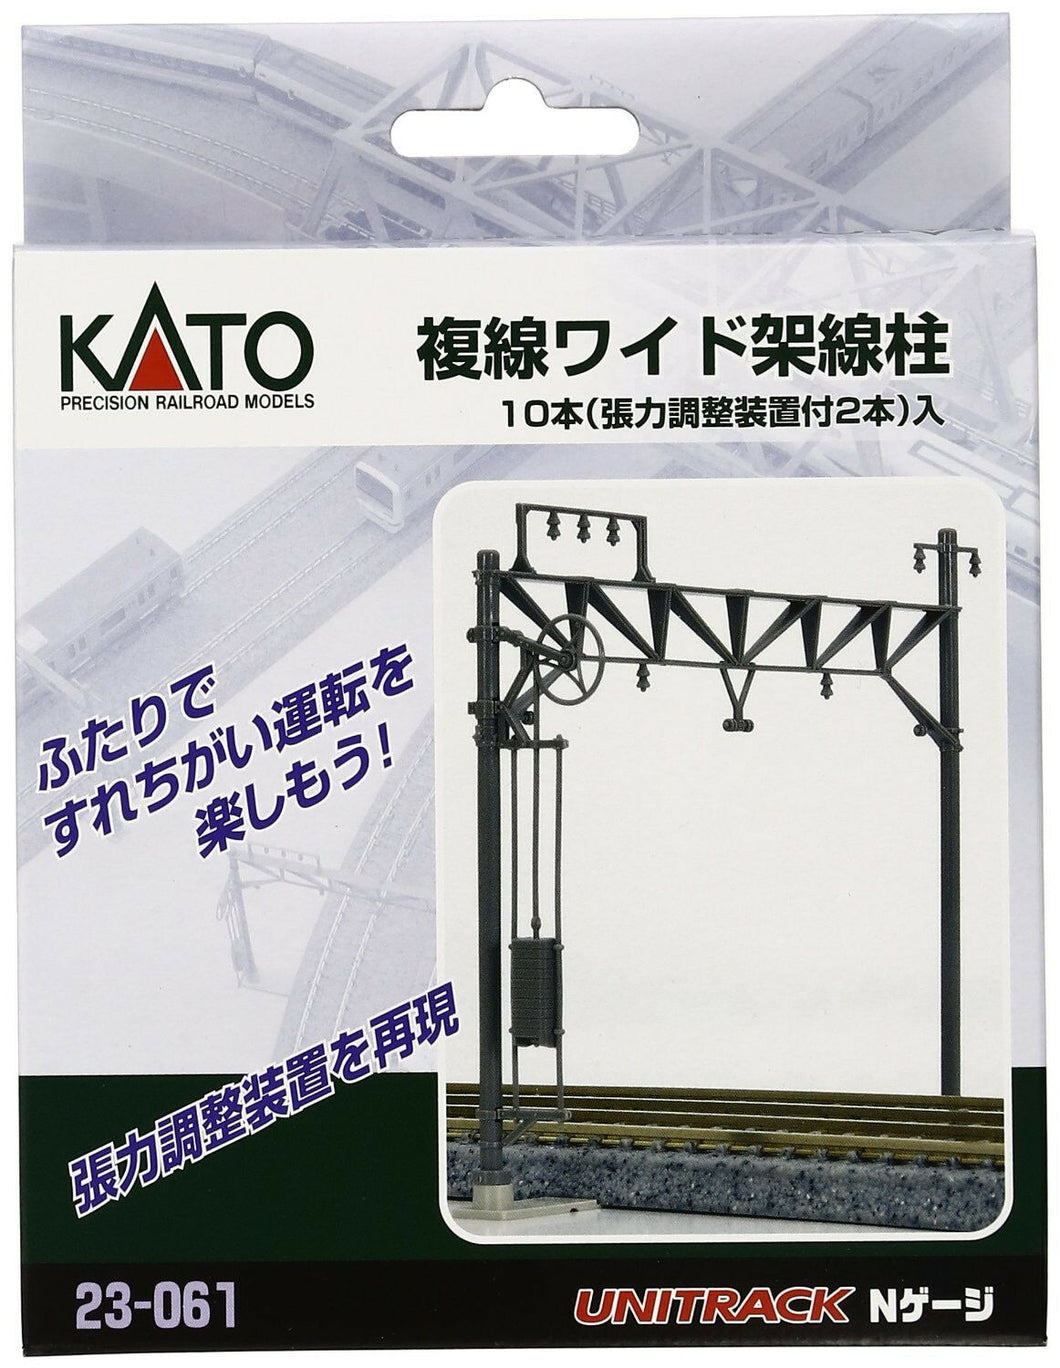 Kato 23-061 Double Wide Catenary Set 10 pcs N Scale